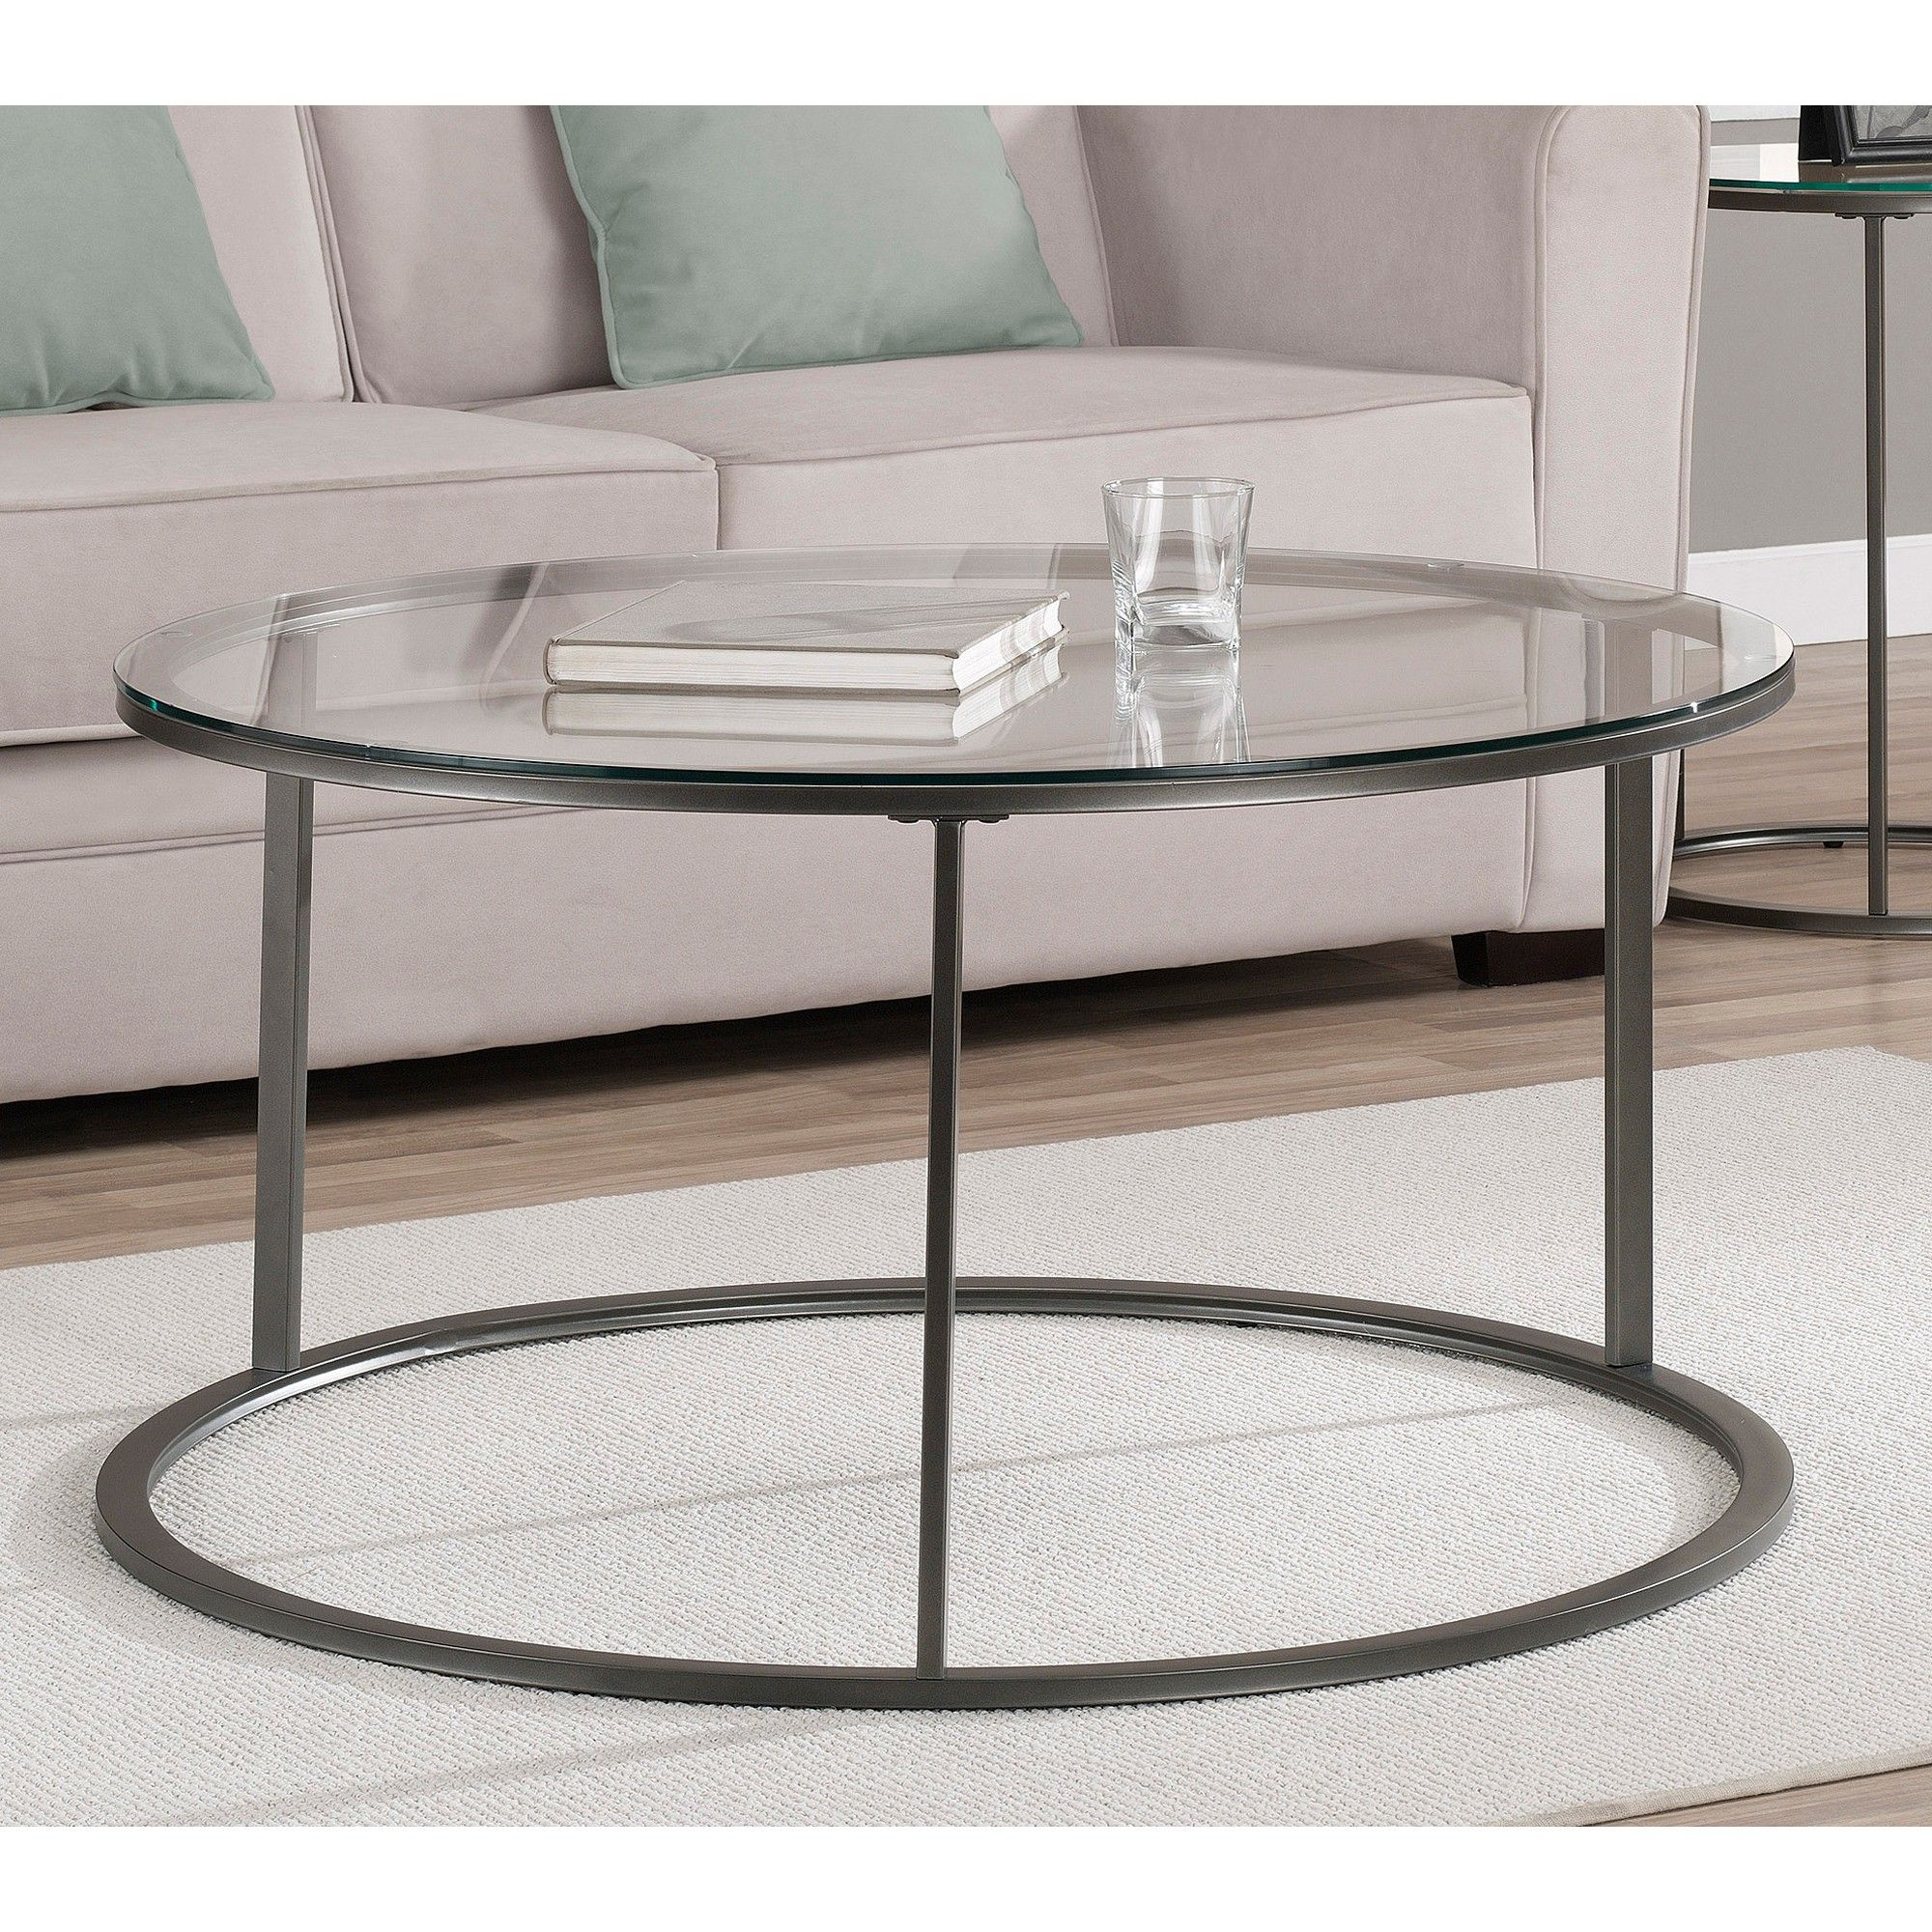 Overstock Com Online Shopping Bedding Furniture Electronics Jewelry Clothing More Coffee Table Stylish Coffee Table Glass Top Coffee Table [ 2000 x 2000 Pixel ]